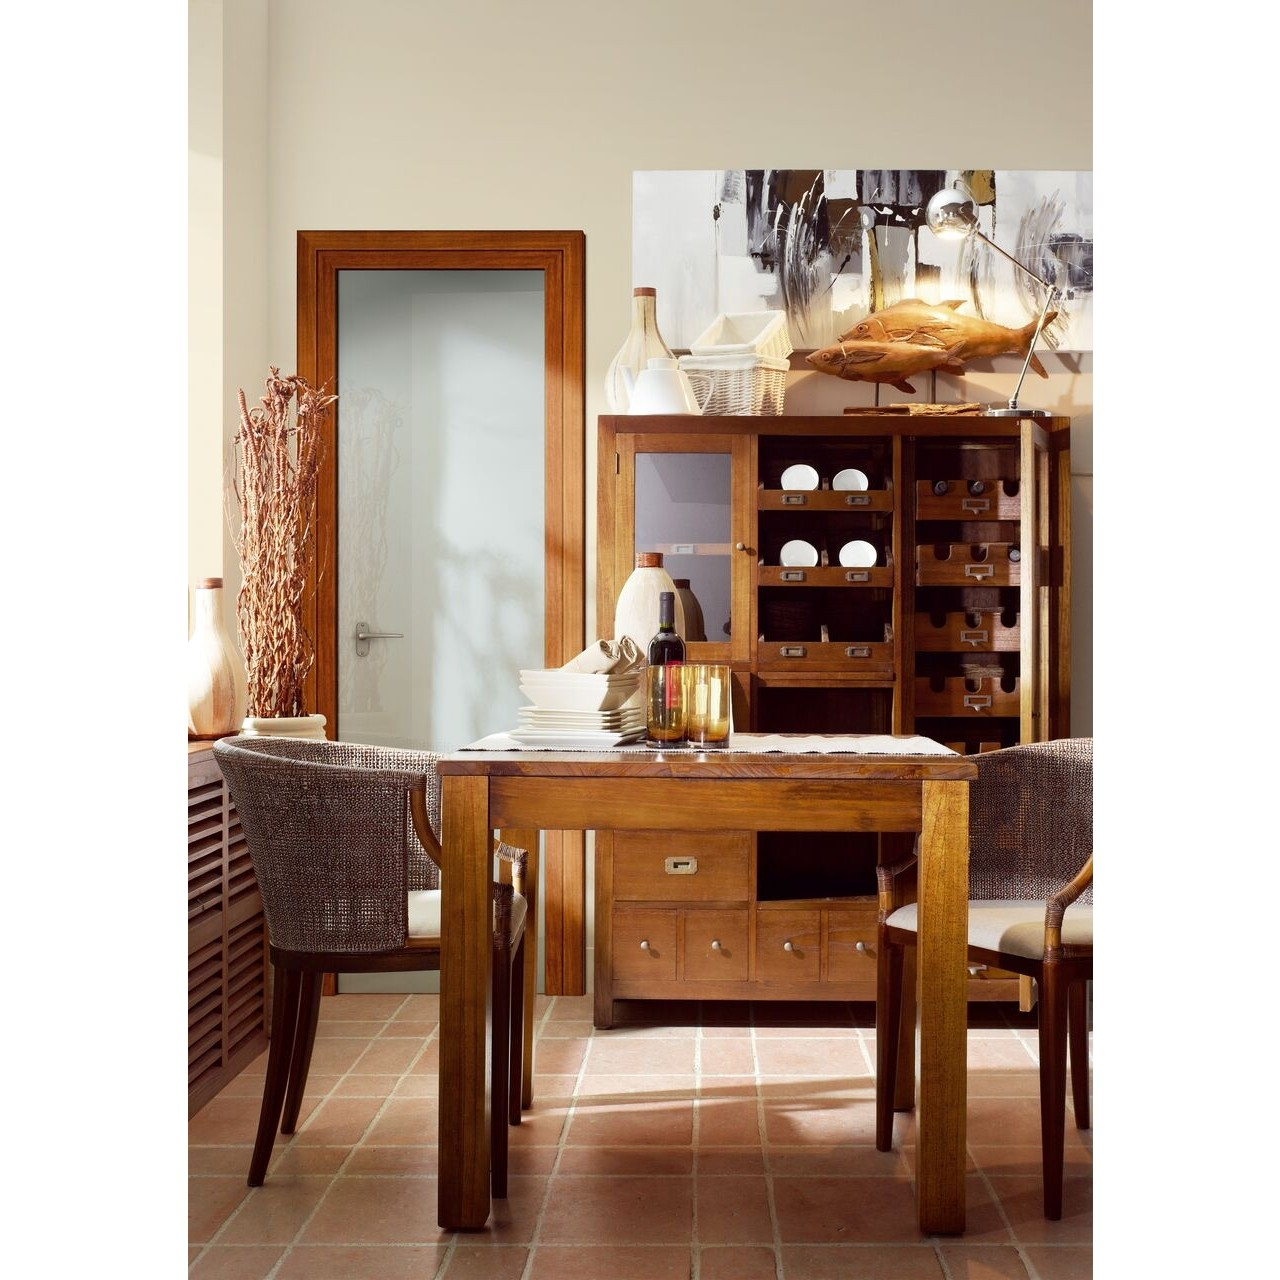 Buffet etnico neo coloniale etnic outlet arredamento for Etnico outlet